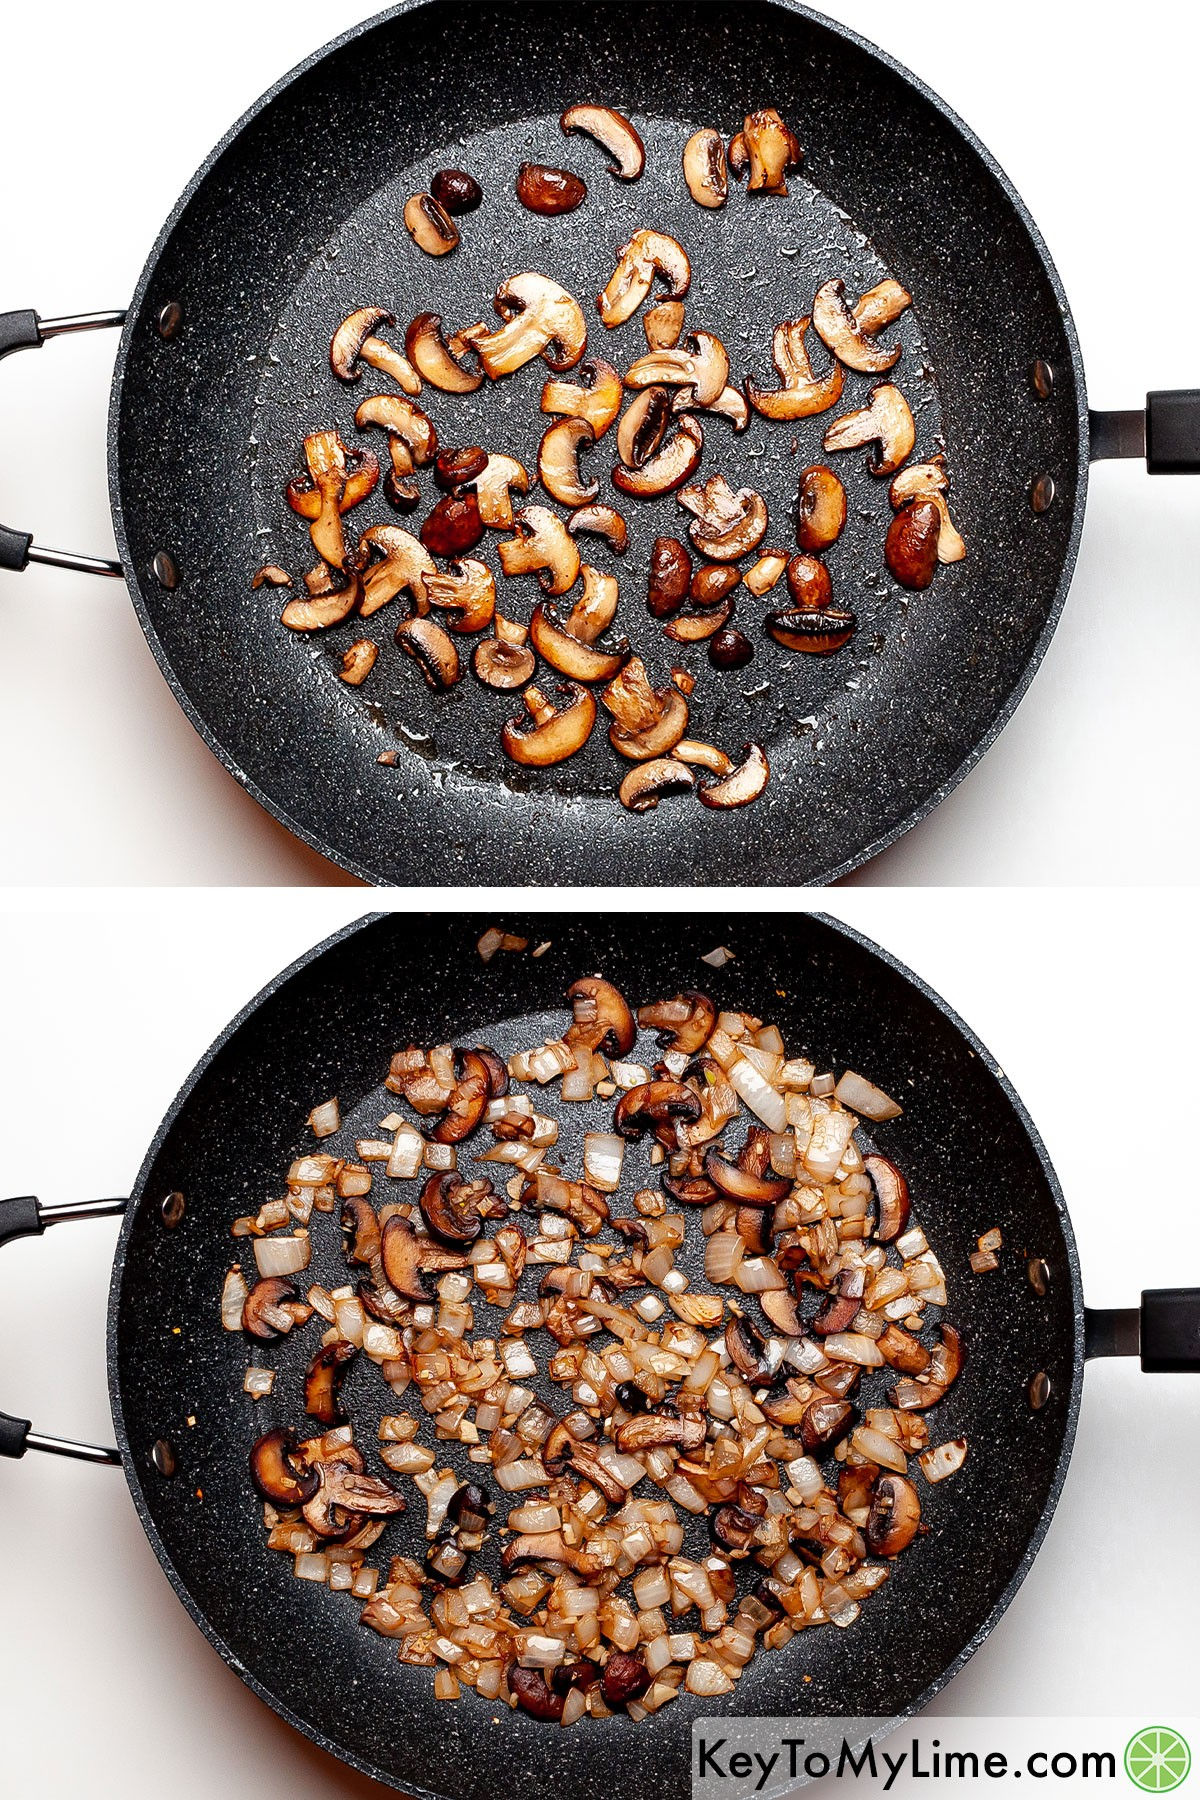 A process photo showing browning mushrooms and then sautéing mushrooms.